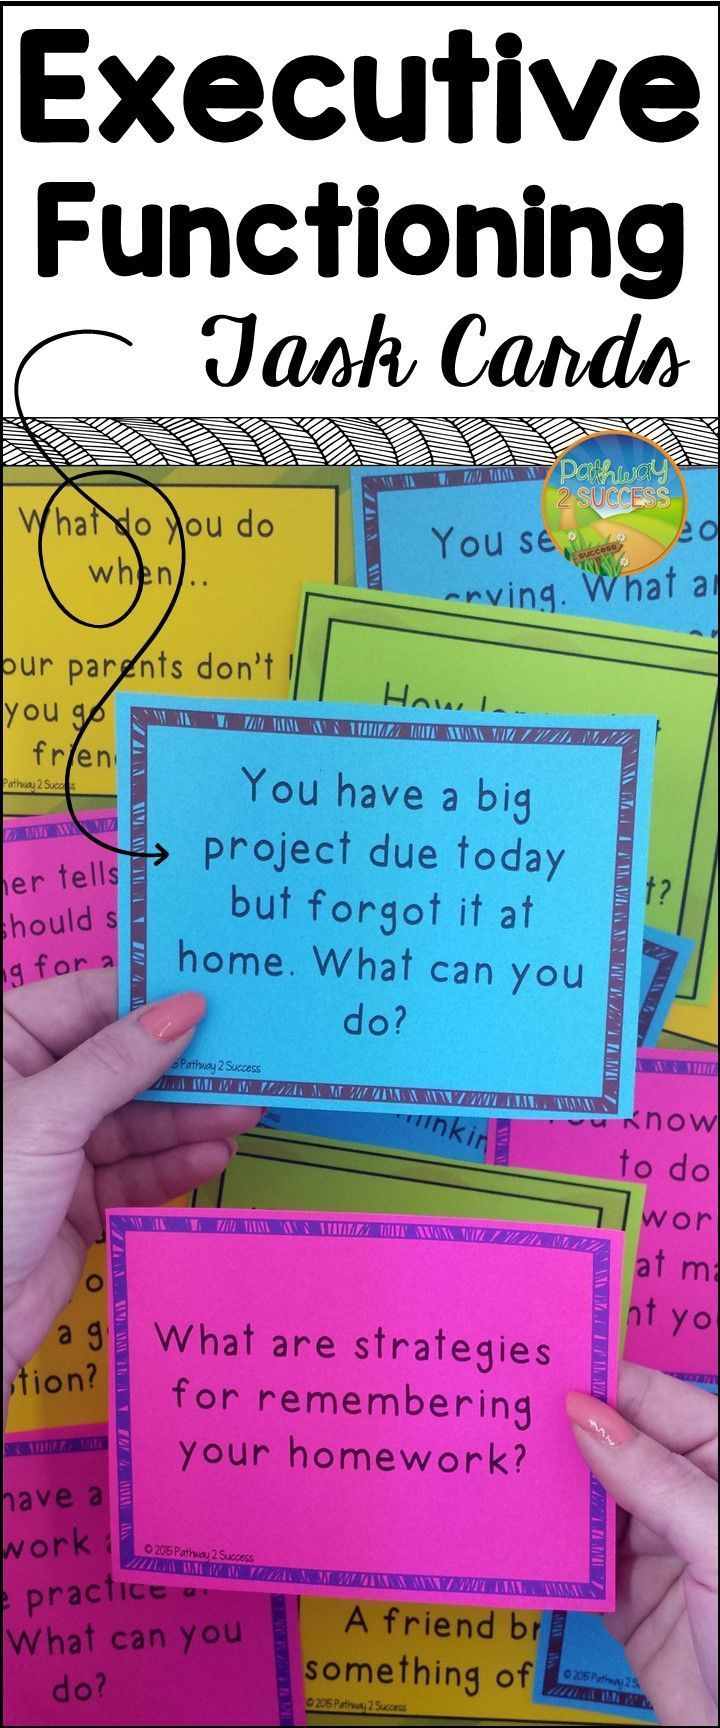 Executive functioning task cards to help with planning, attention, organization, task initiation and more!